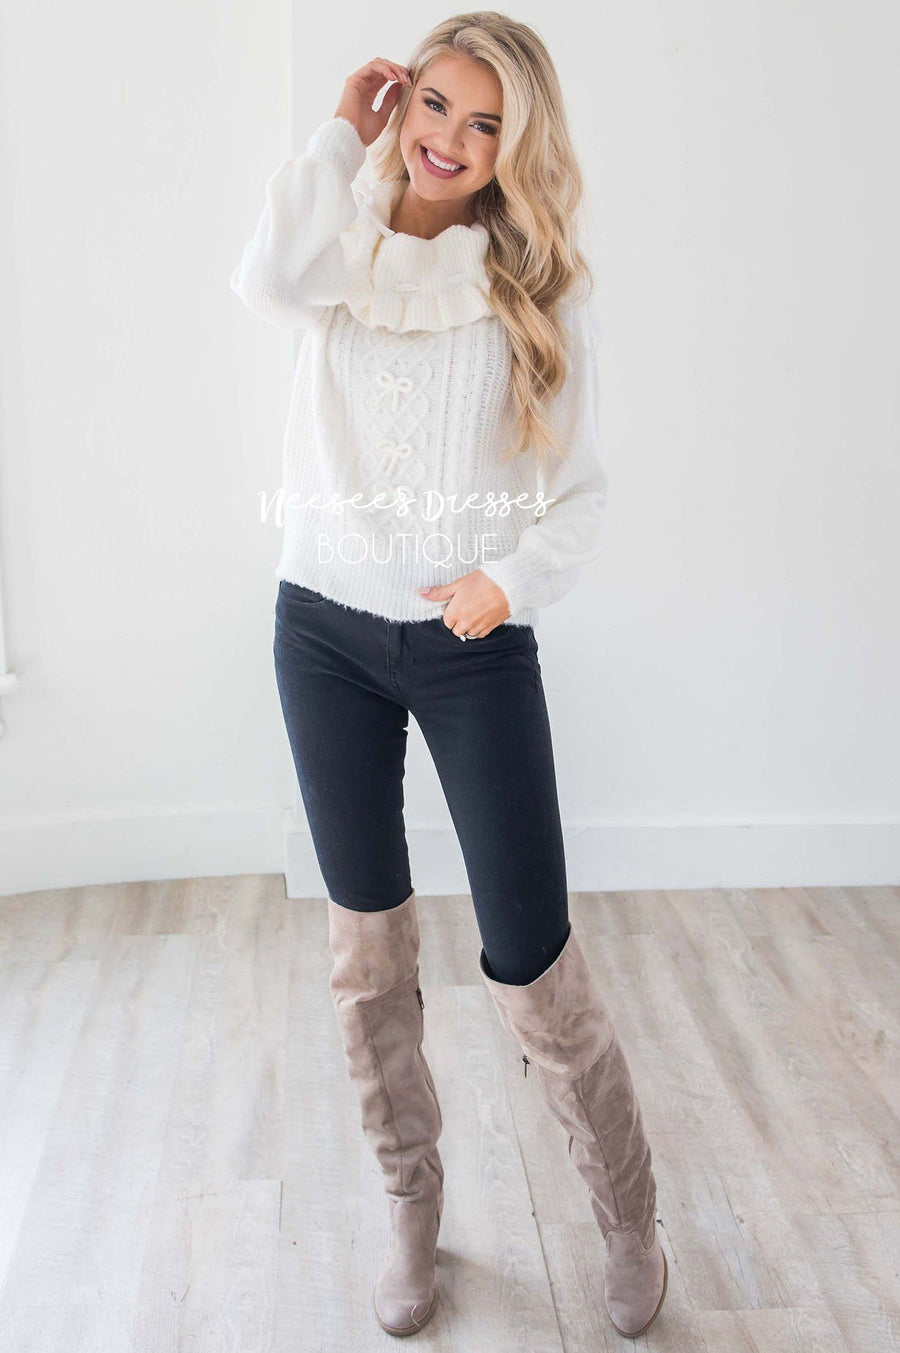 Ivory Knit Sweater with Cute Bow Details Tops vendor-unknown